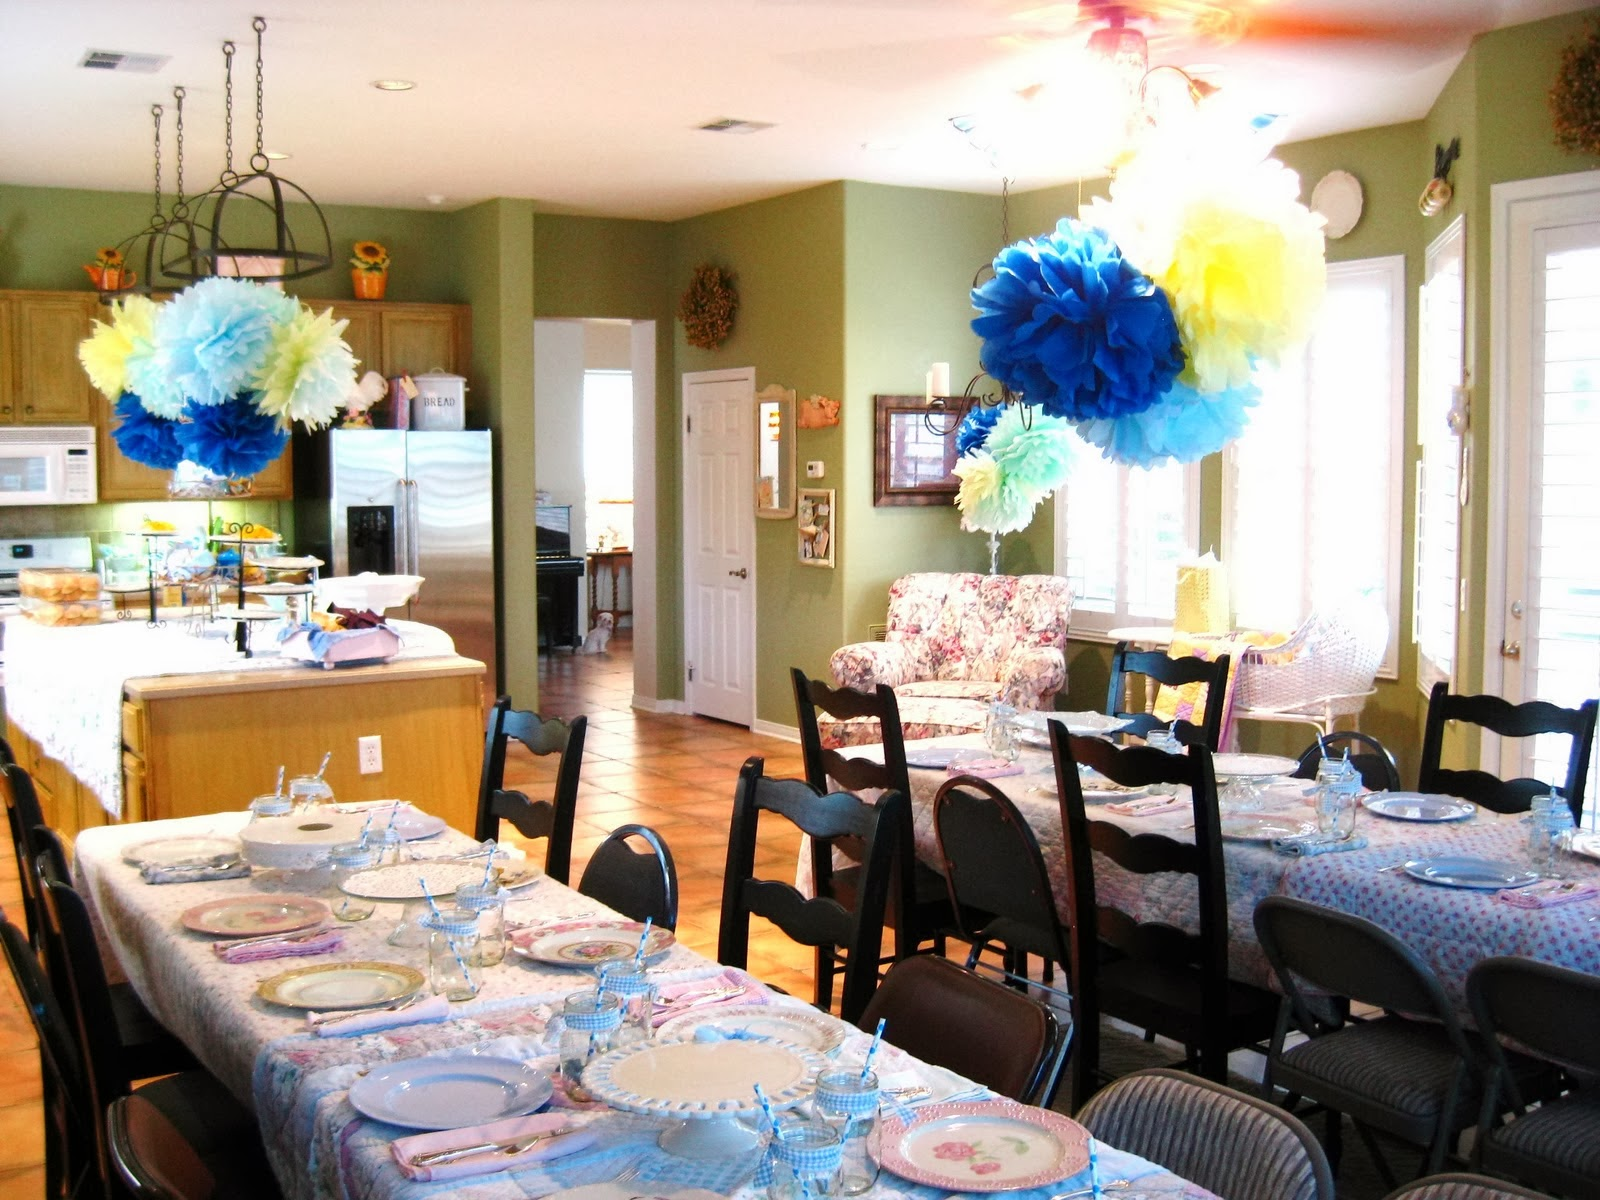 Daughters Baby Shower in Family Room/Kitchen!